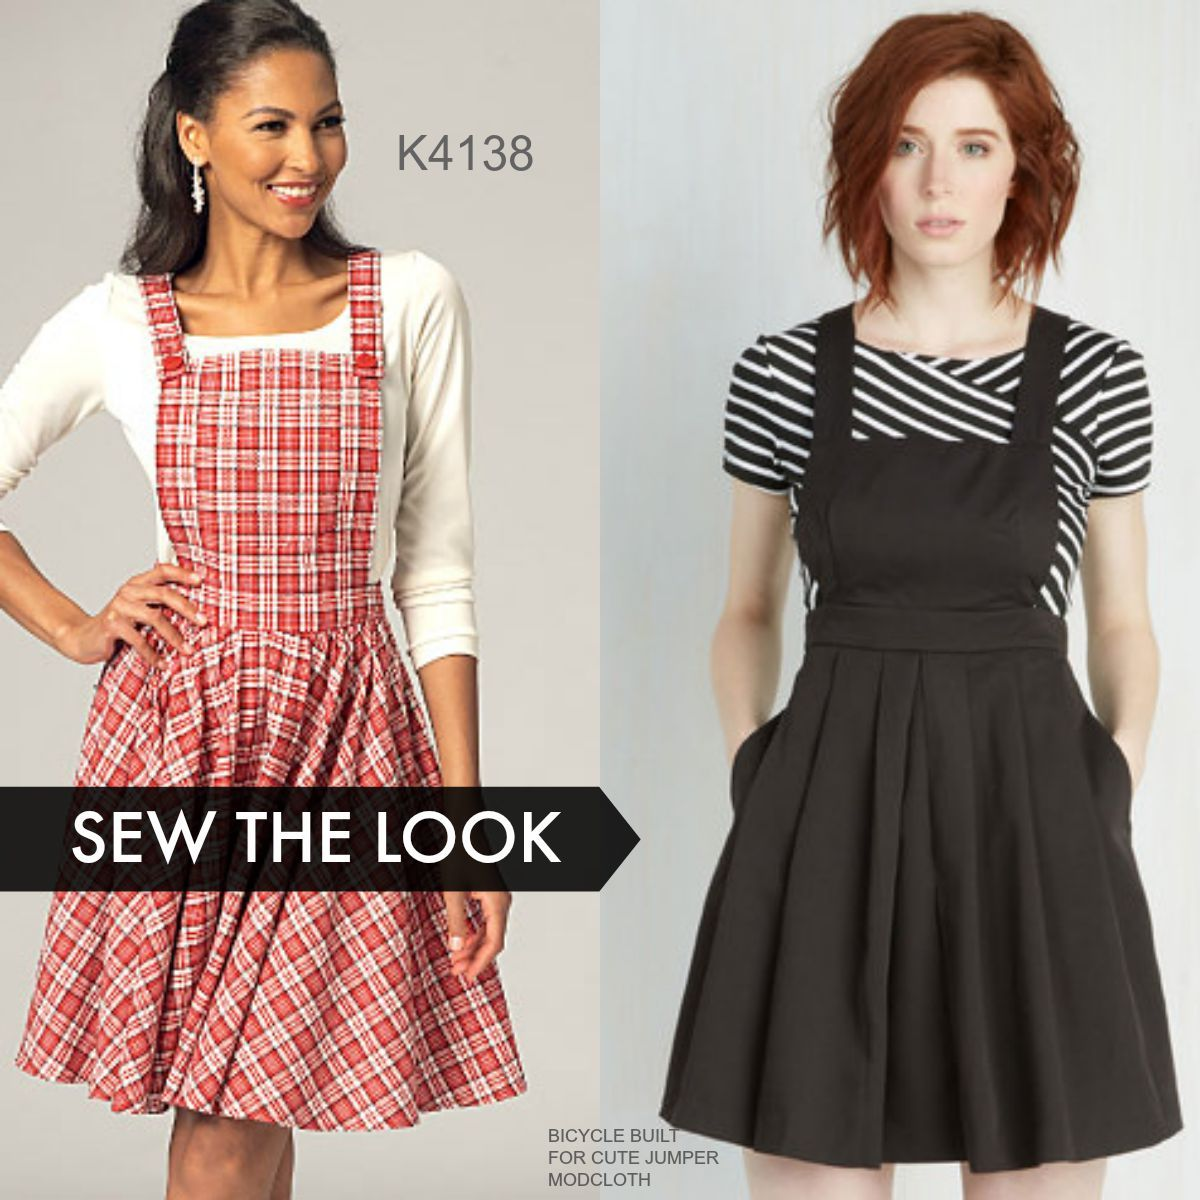 cde8bf154cc3ae Sew the Look with Kwik Sew jumper sewing pattern K4138. Make it short and  flirty.